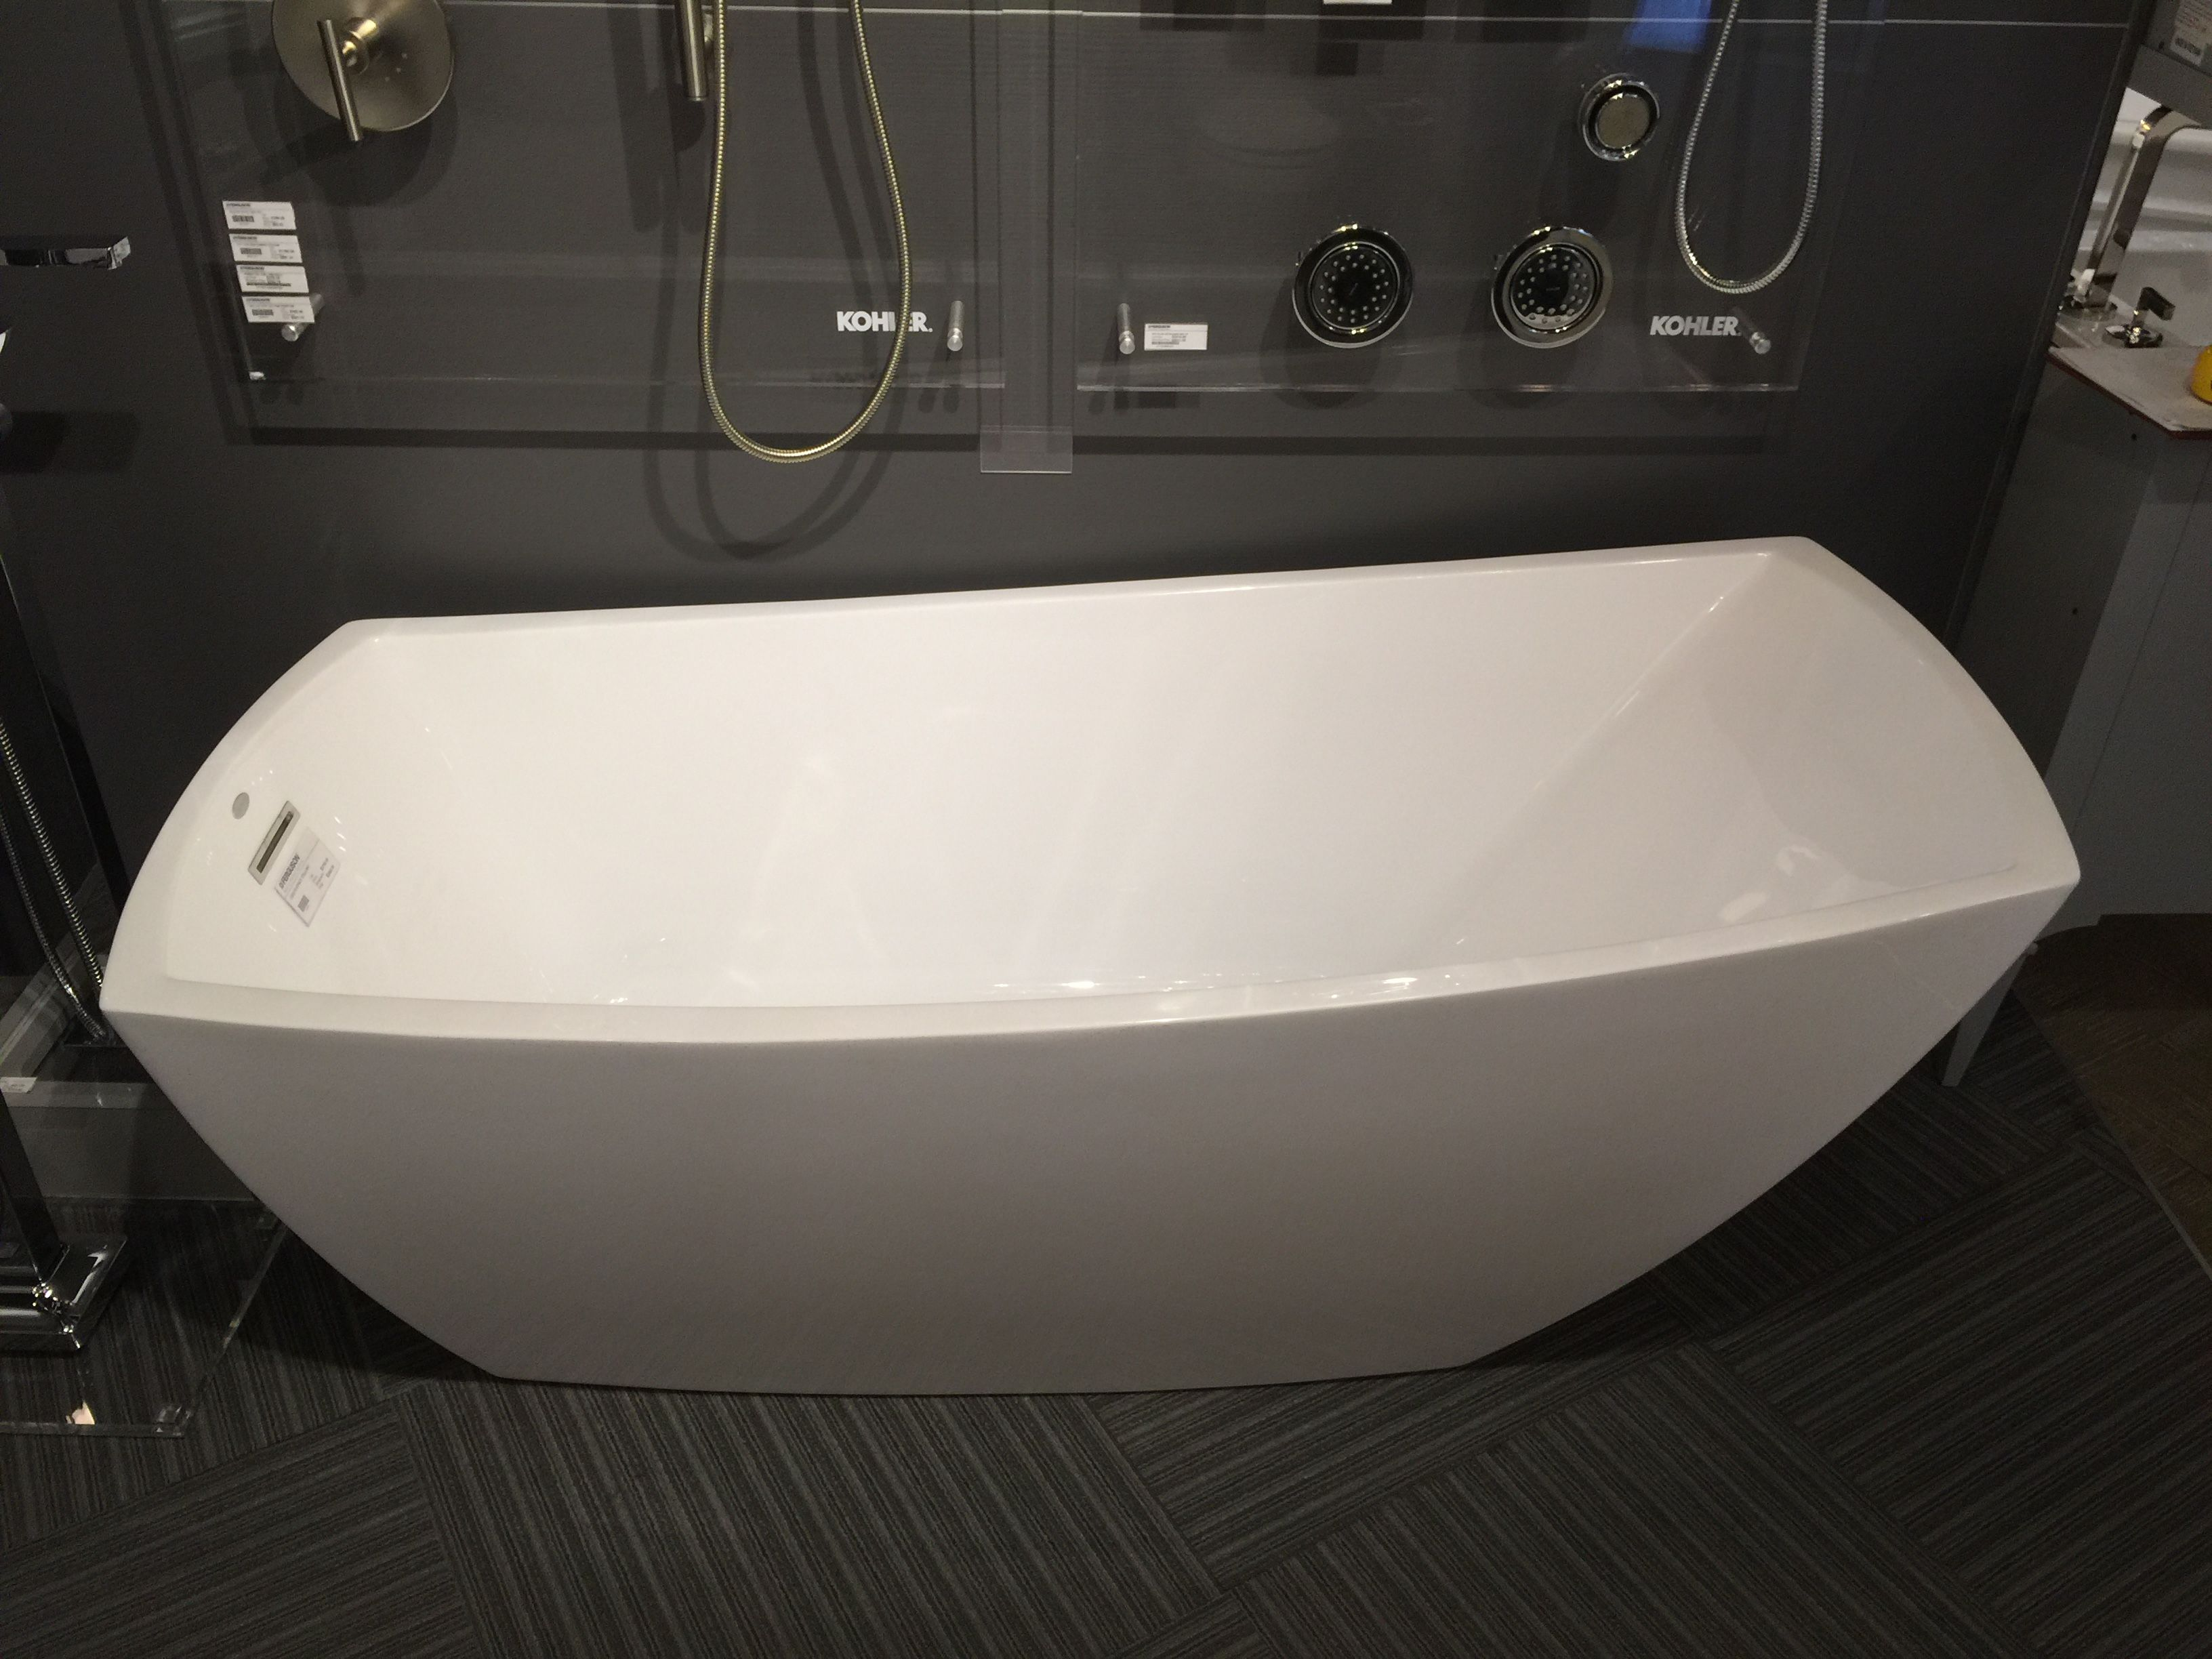 Most comfy tub ever! Jacuzzi brand, \